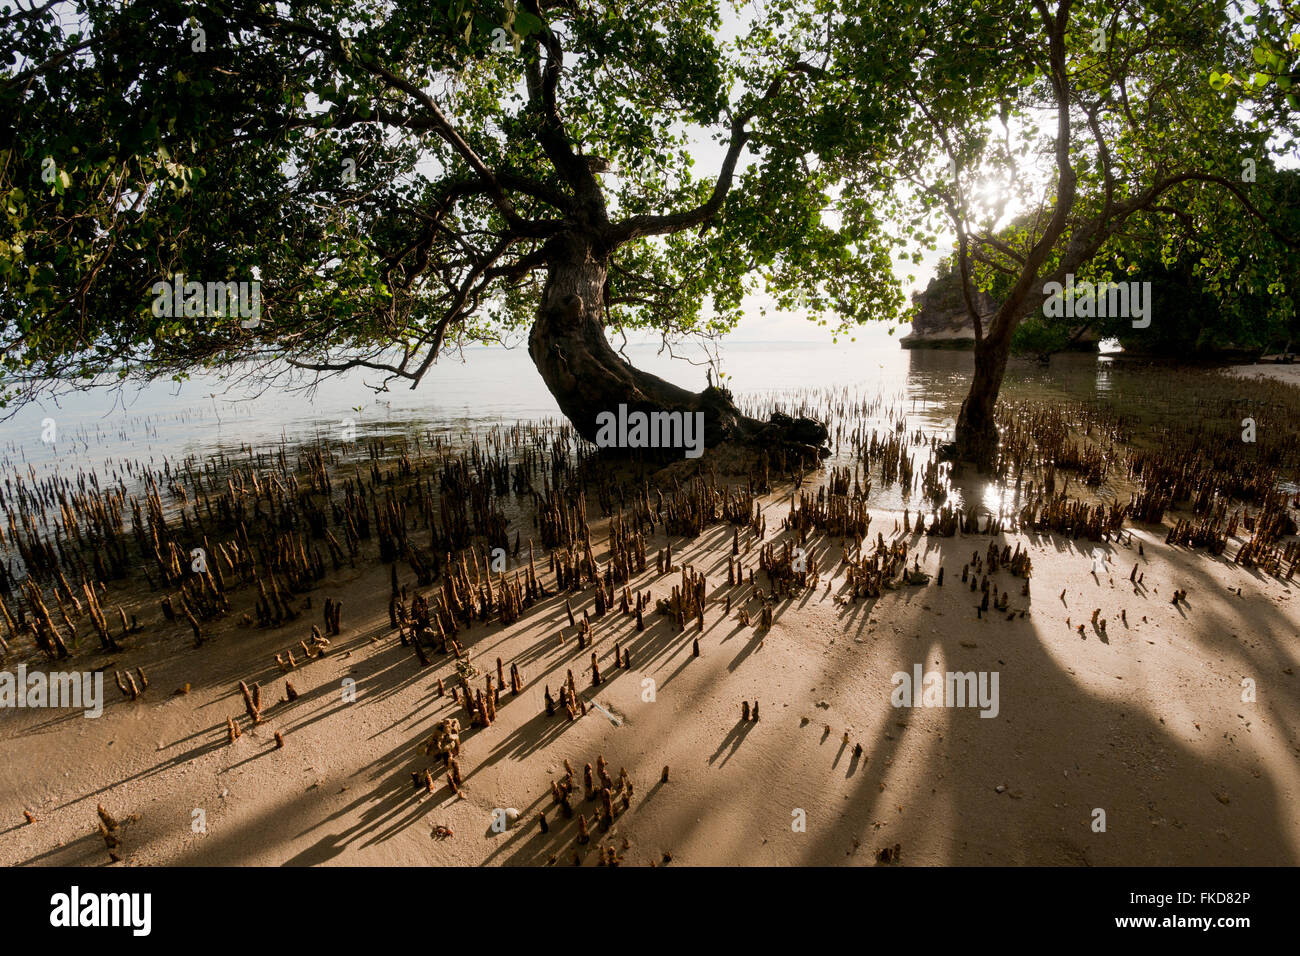 Aerial roots of a black mangrove tree in the late afternoon. - Stock Image